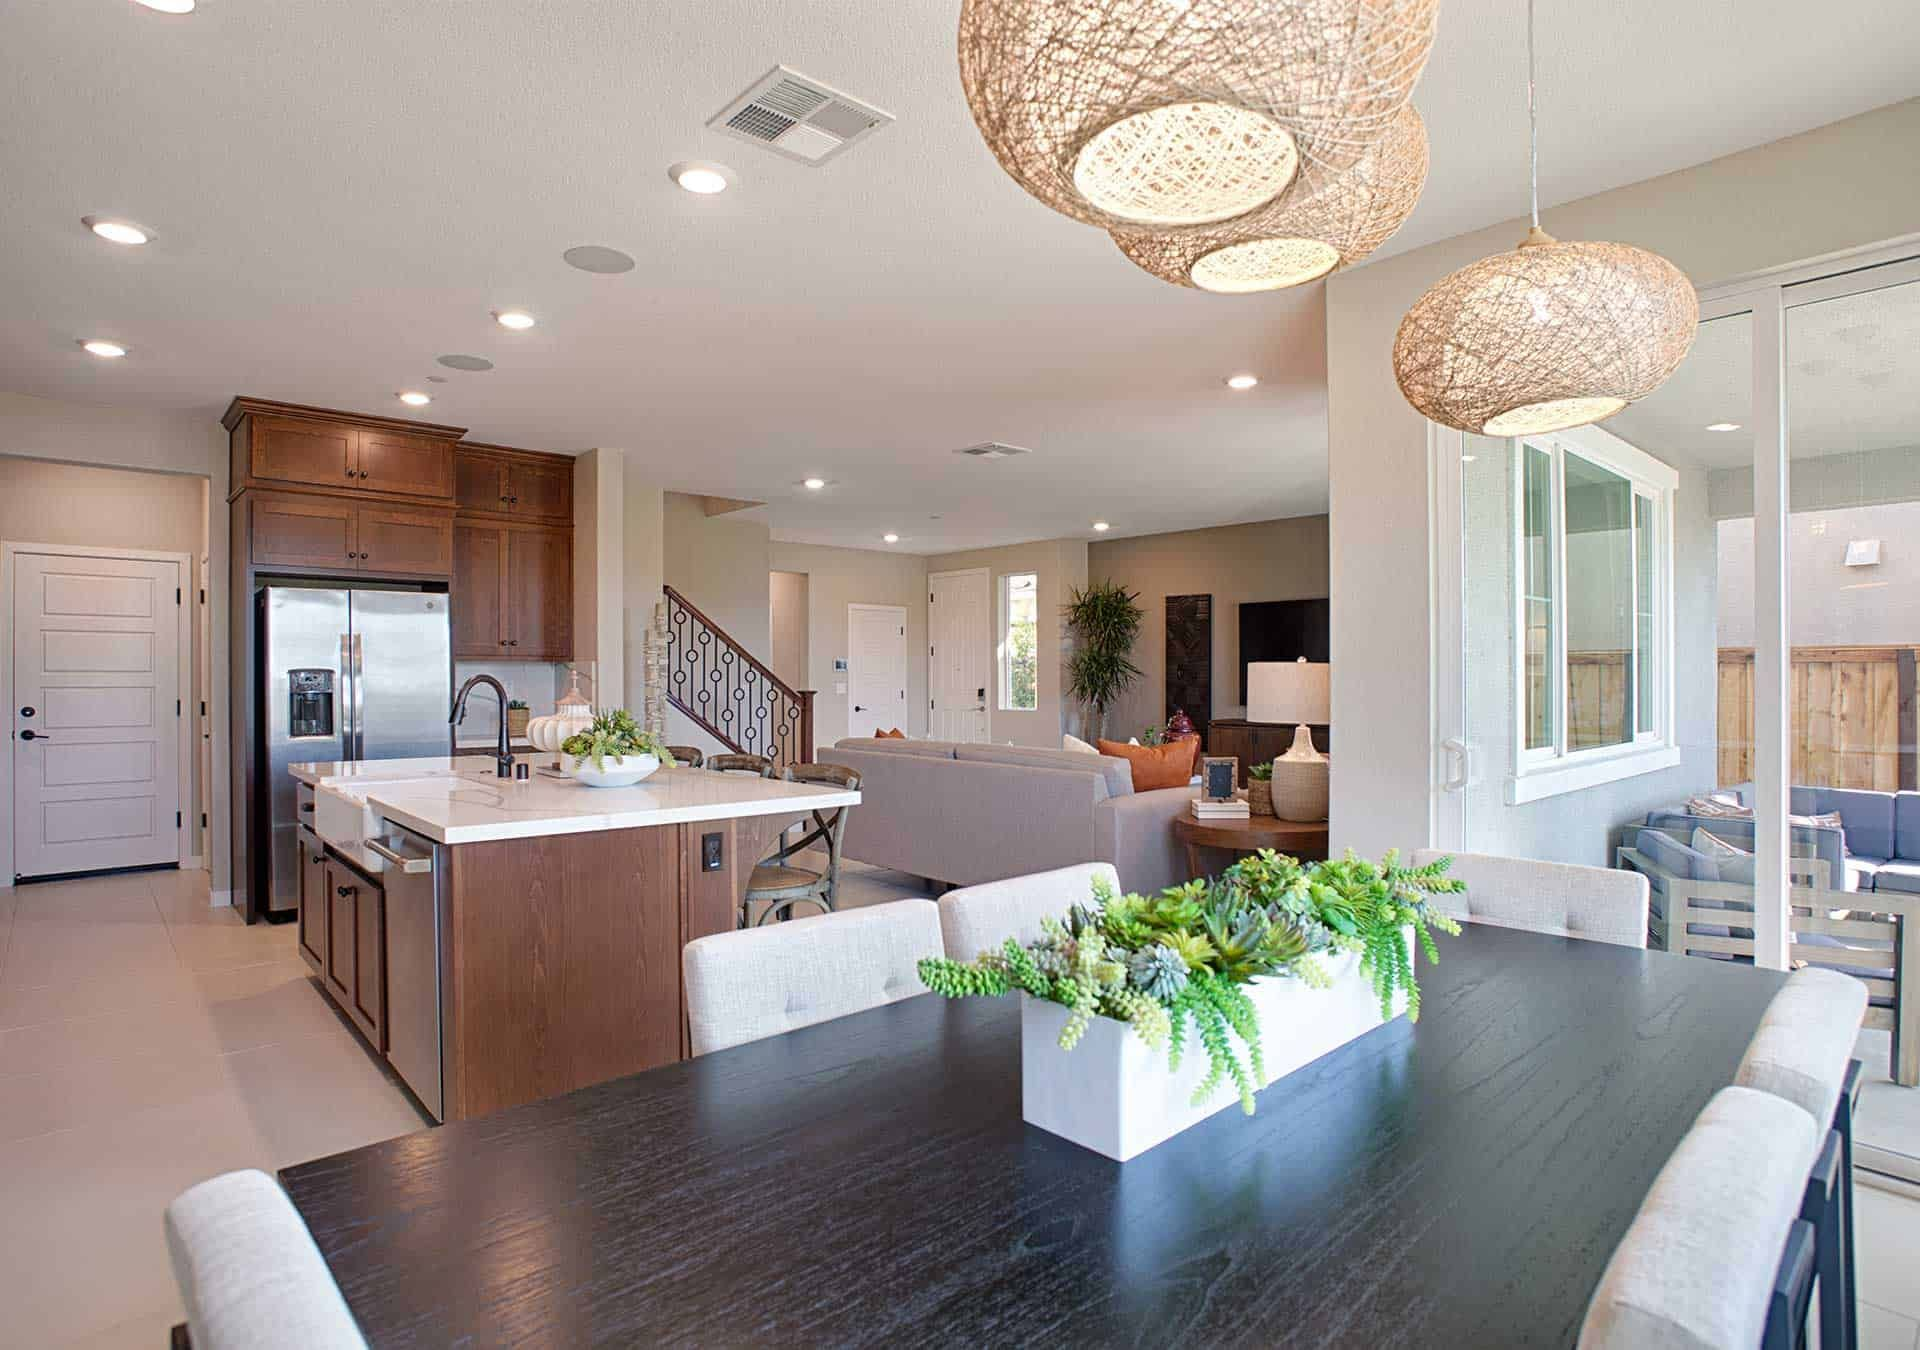 Living Area featured in the Plan 3 By Tri Pointe Homes in Vallejo-Napa, CA